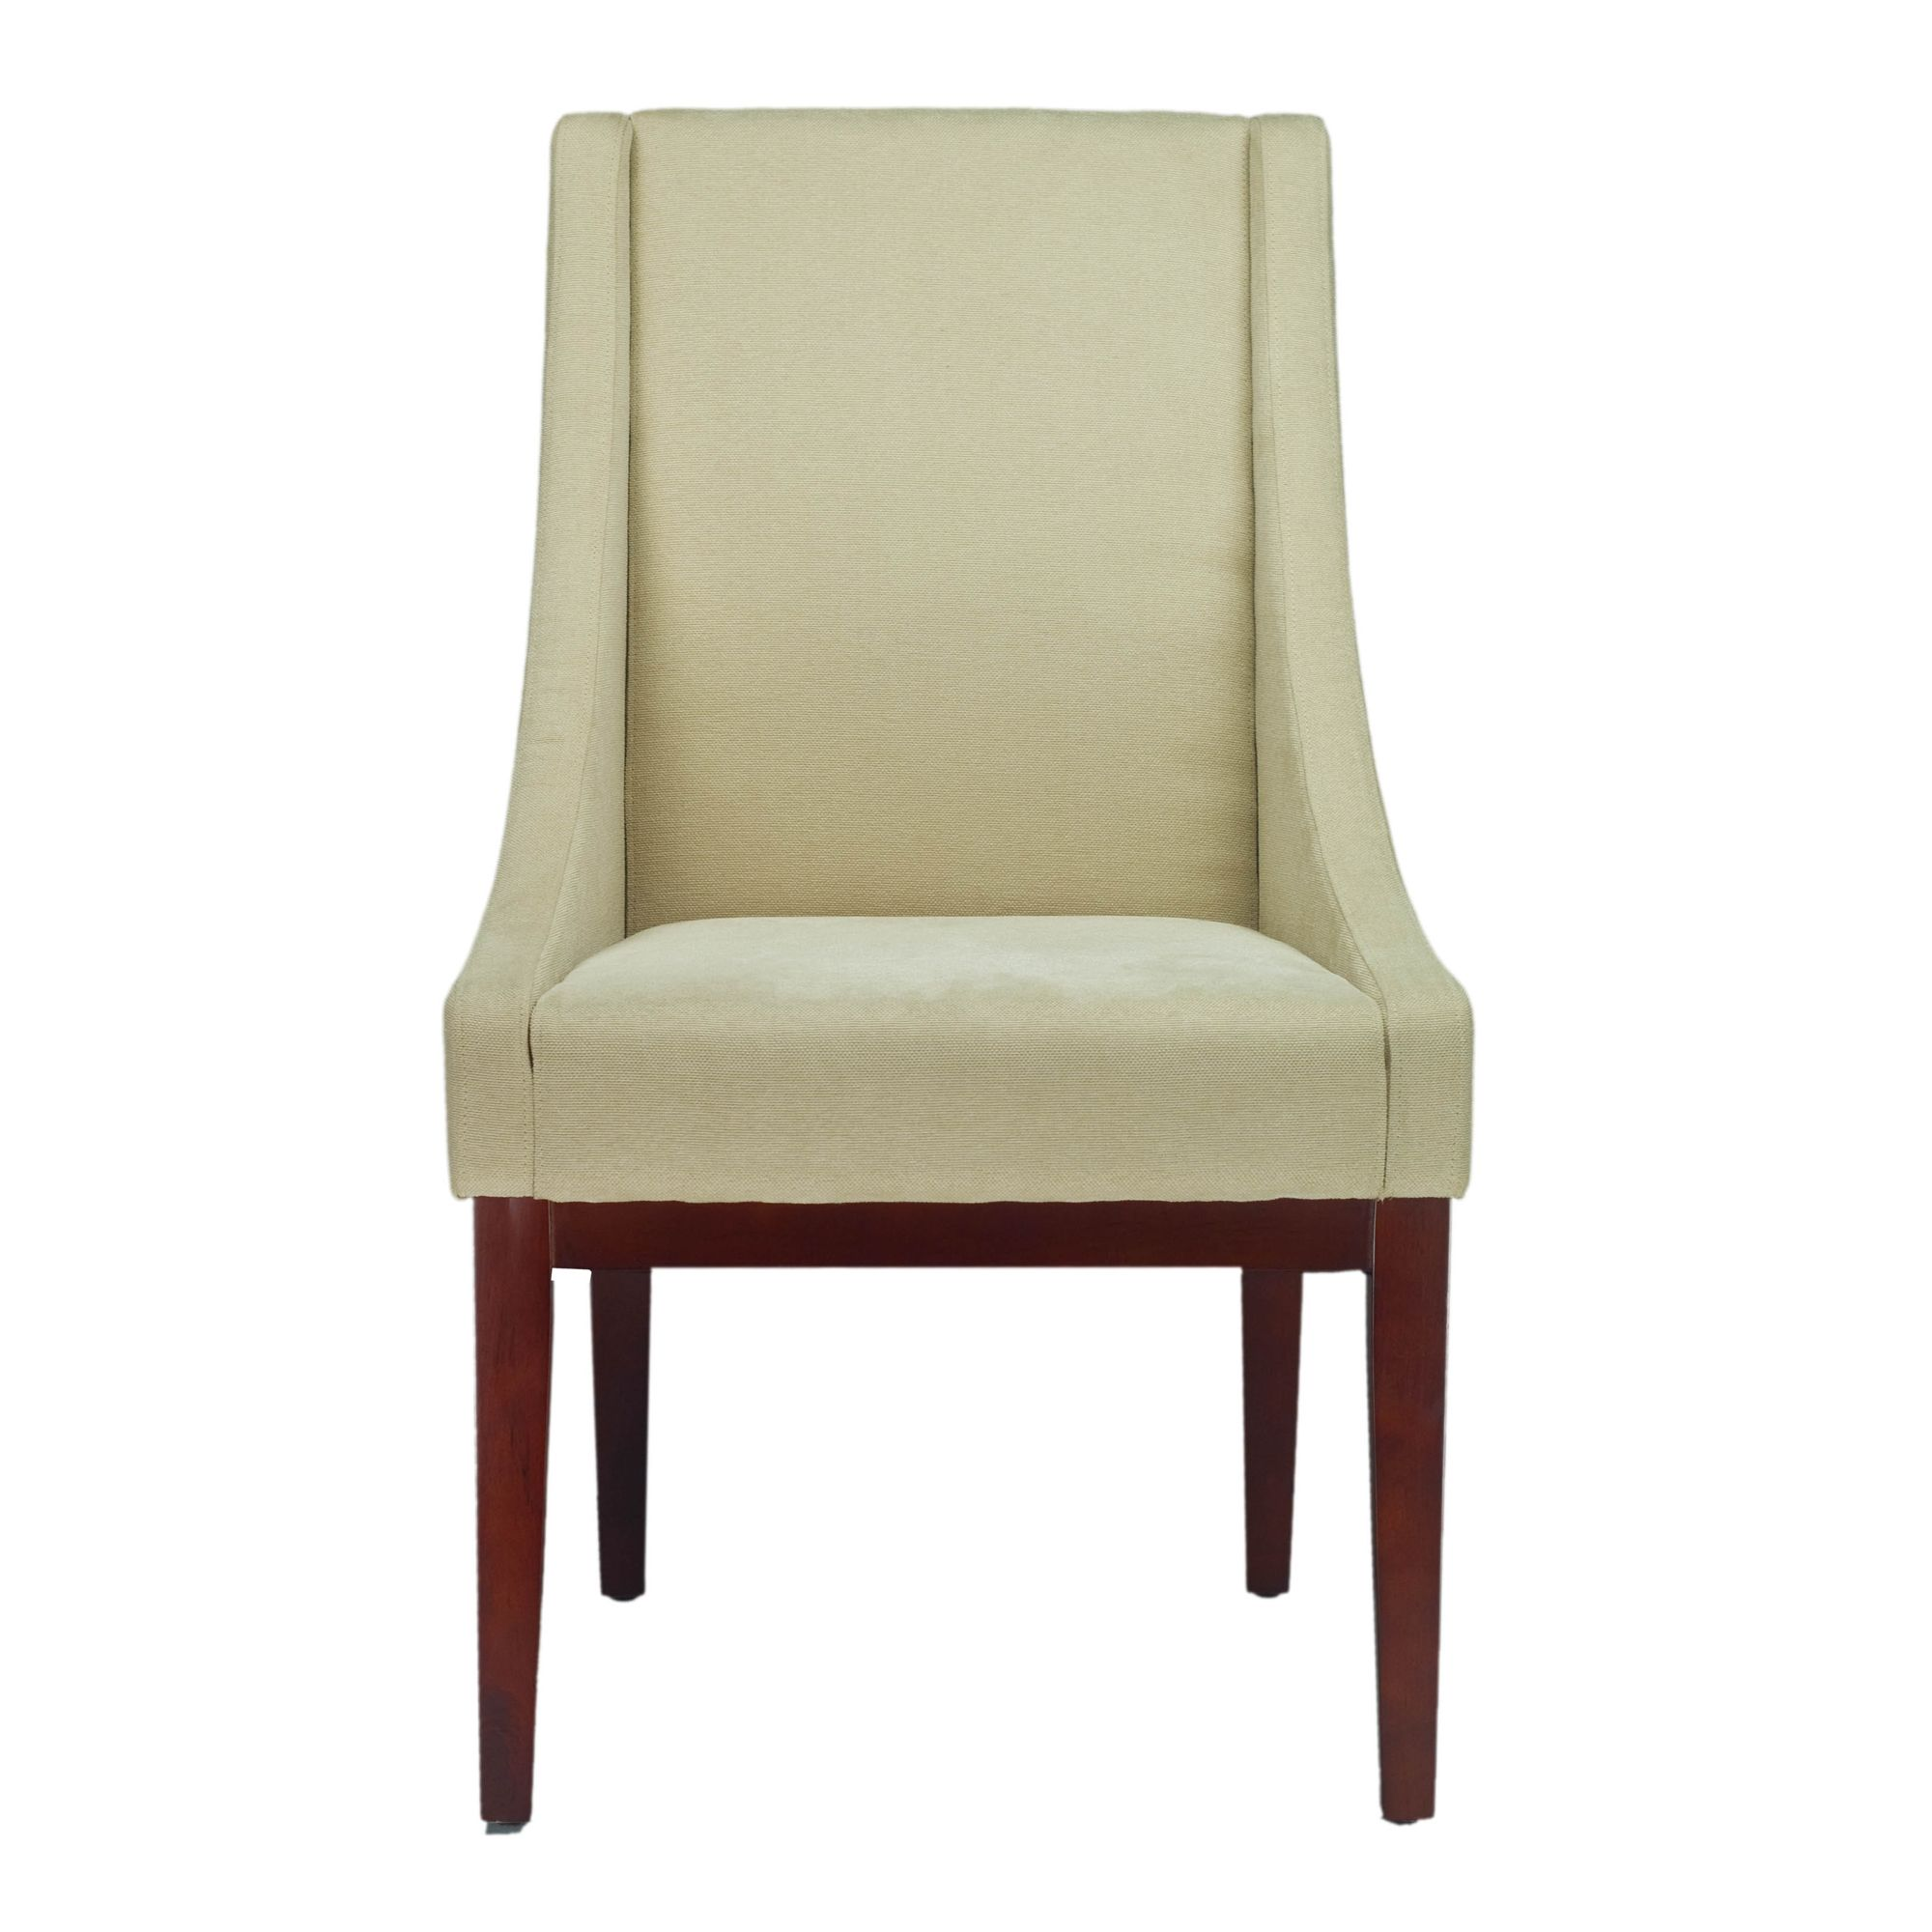 Safavieh en vogue dining soho creme arm chair linen by safavieh